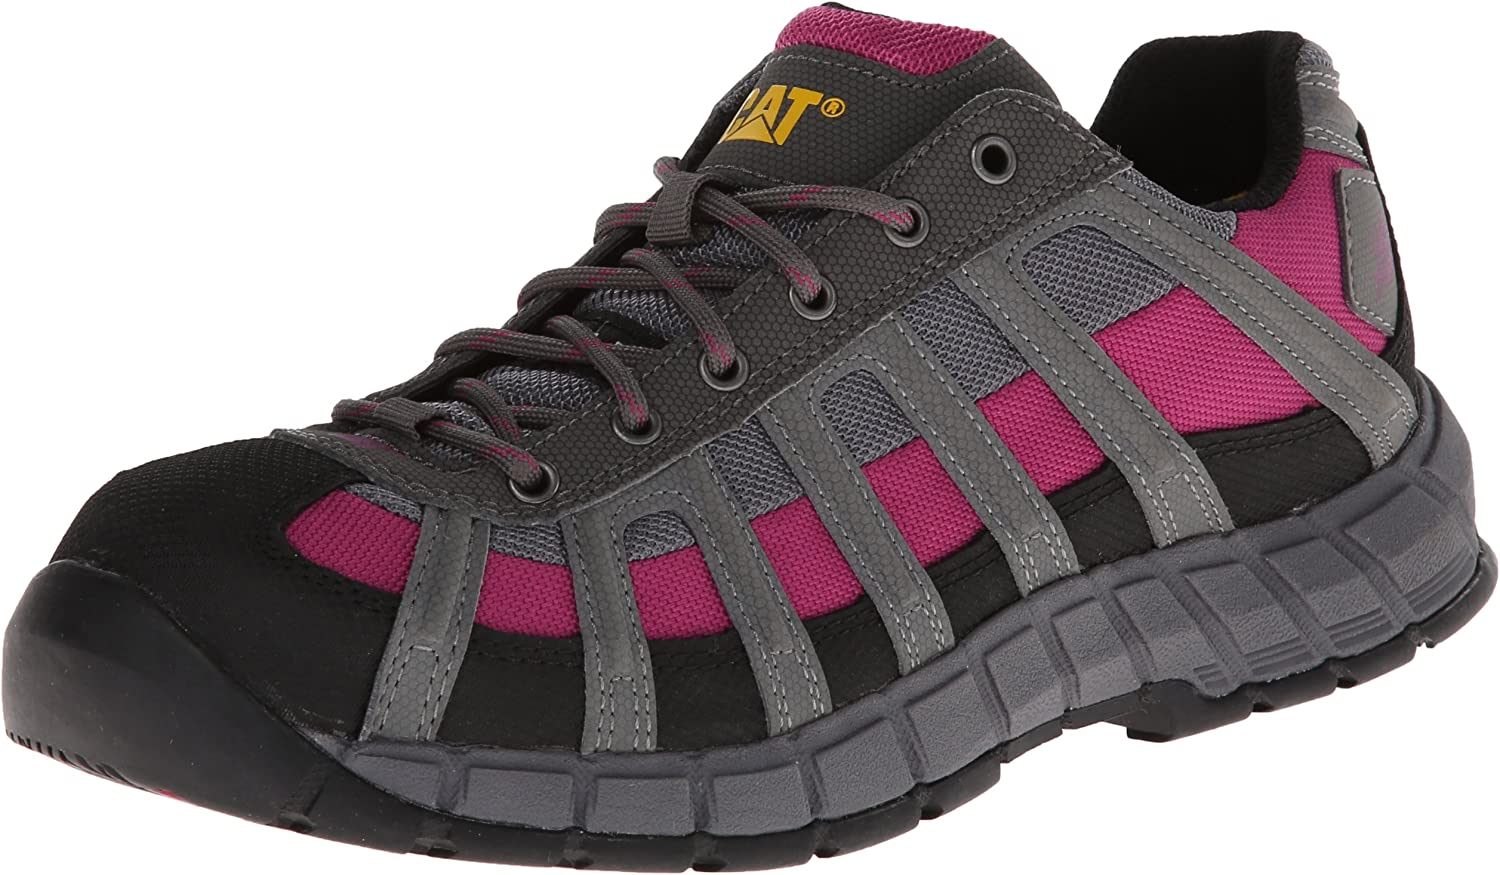 Caterpillar Women's Switch Steel-Toe Work shoes